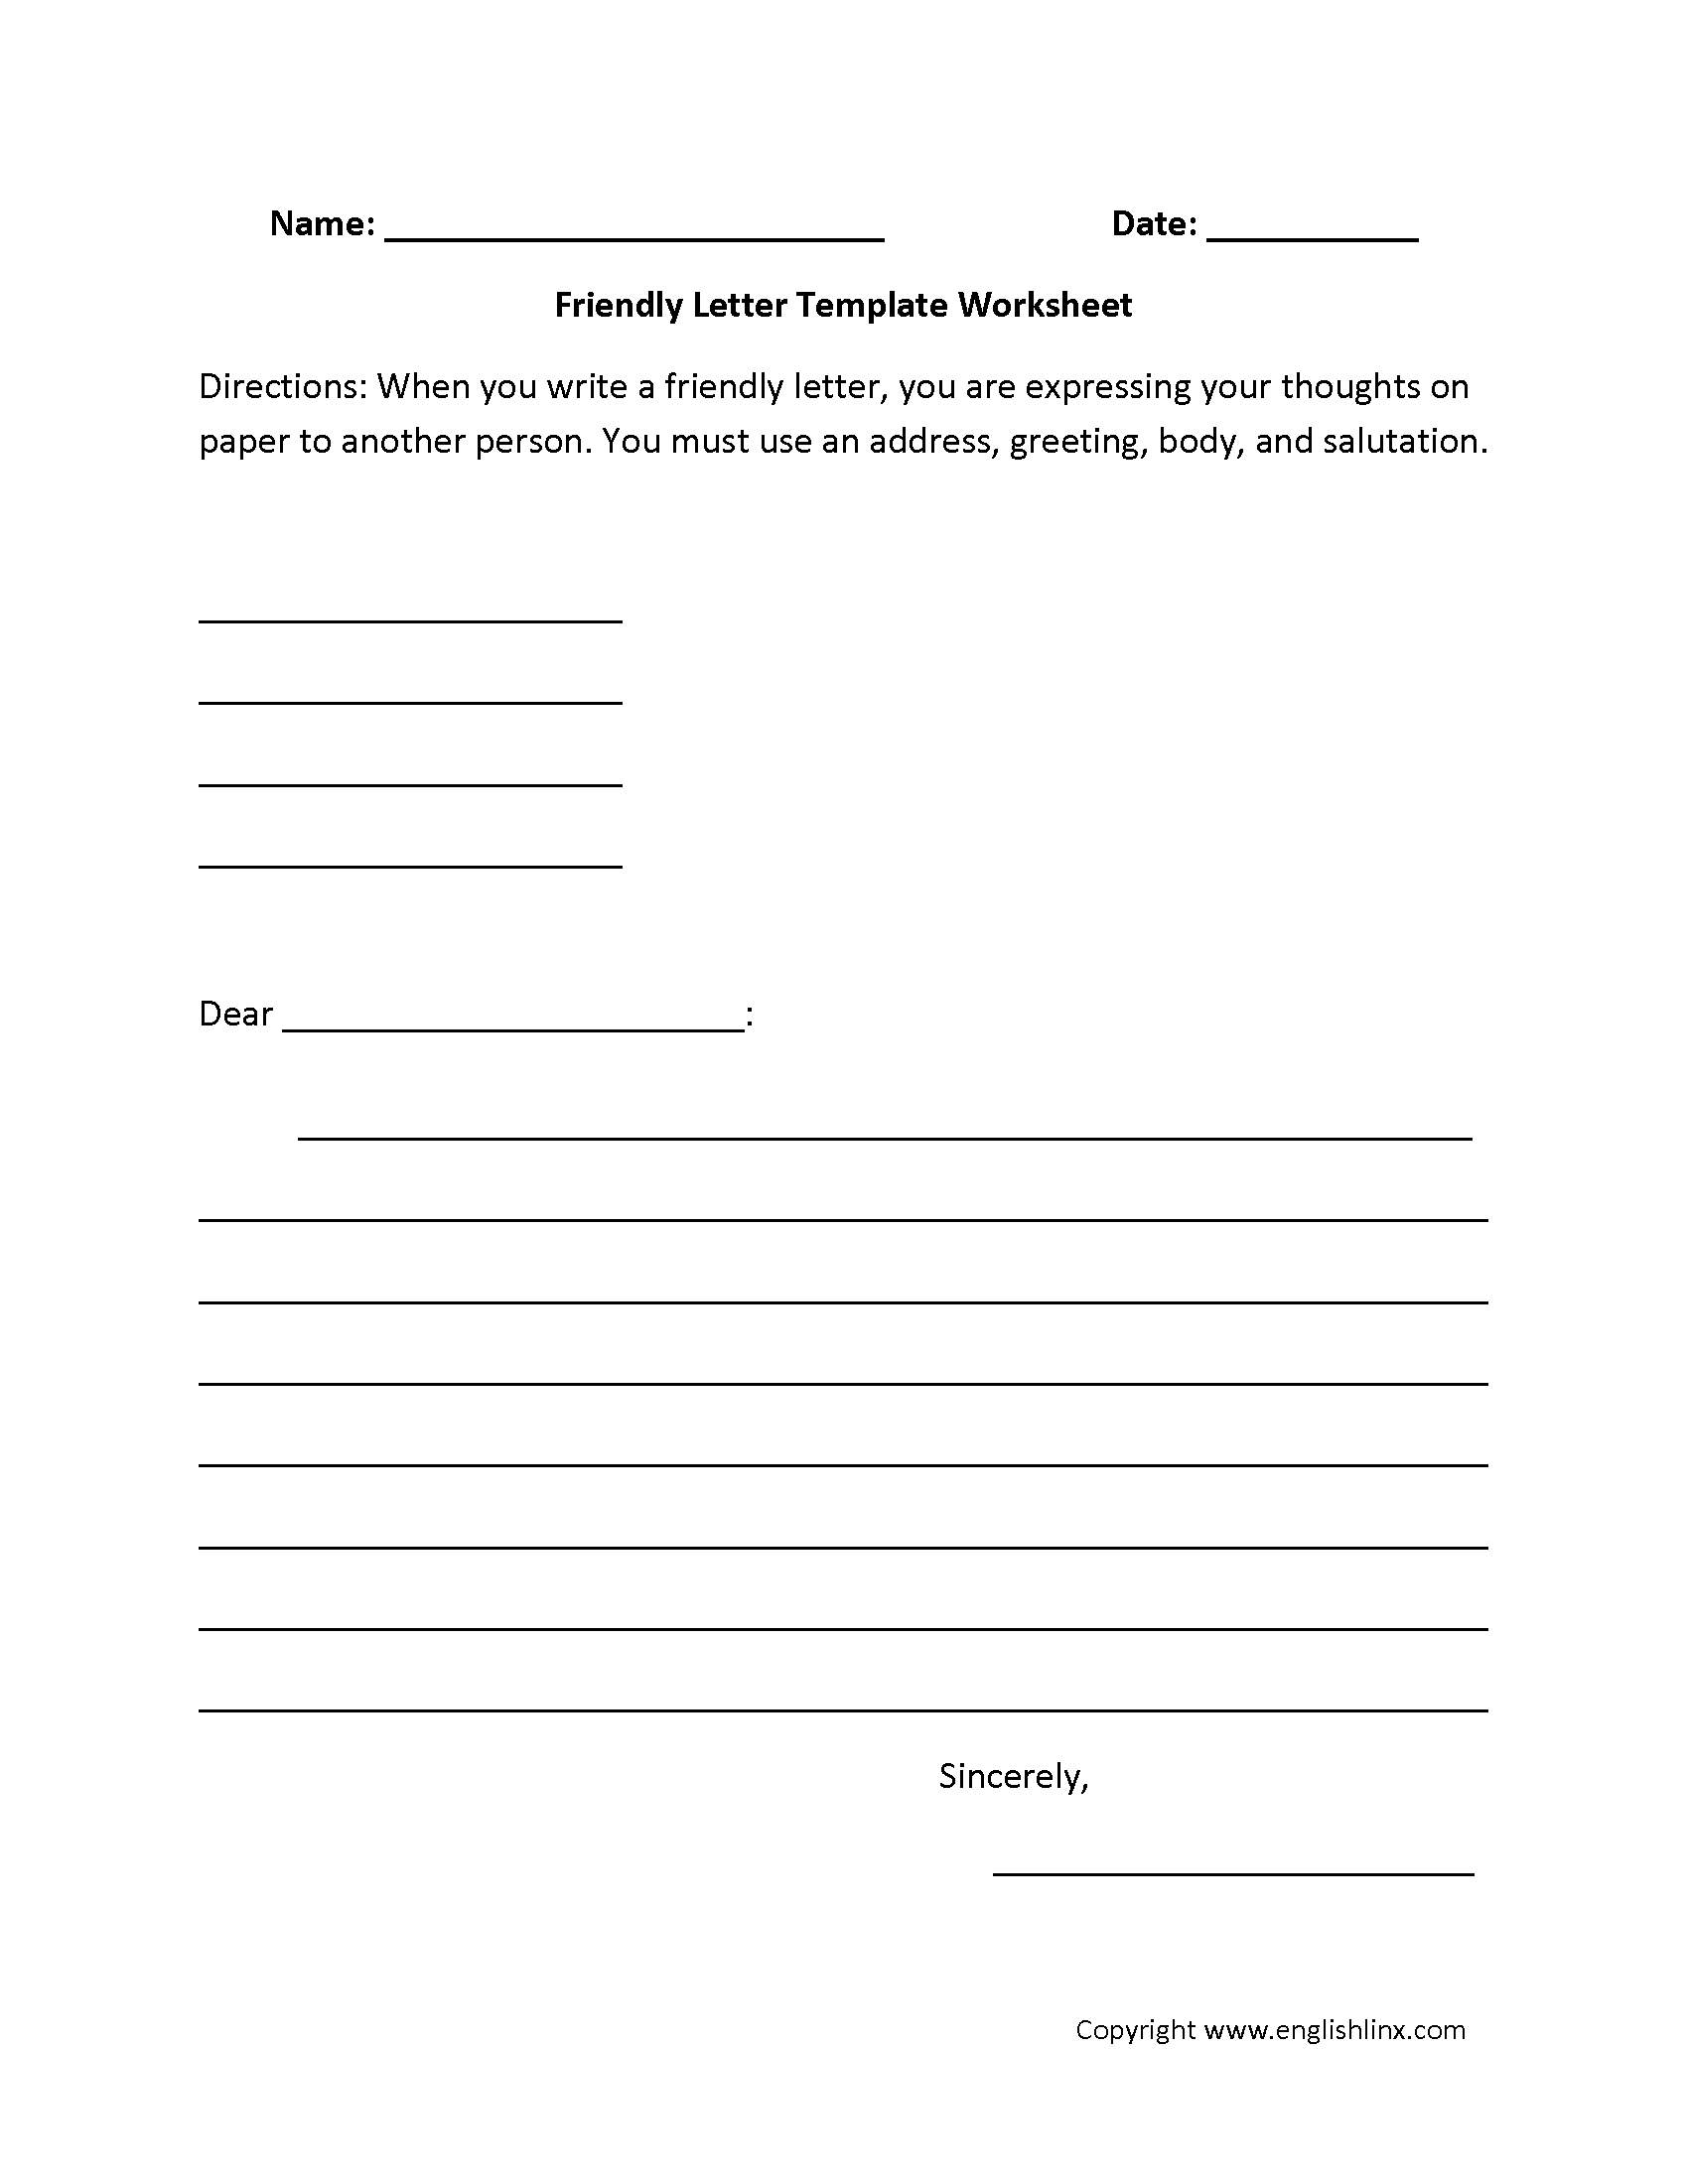 Letter Writing Worksheets With Images